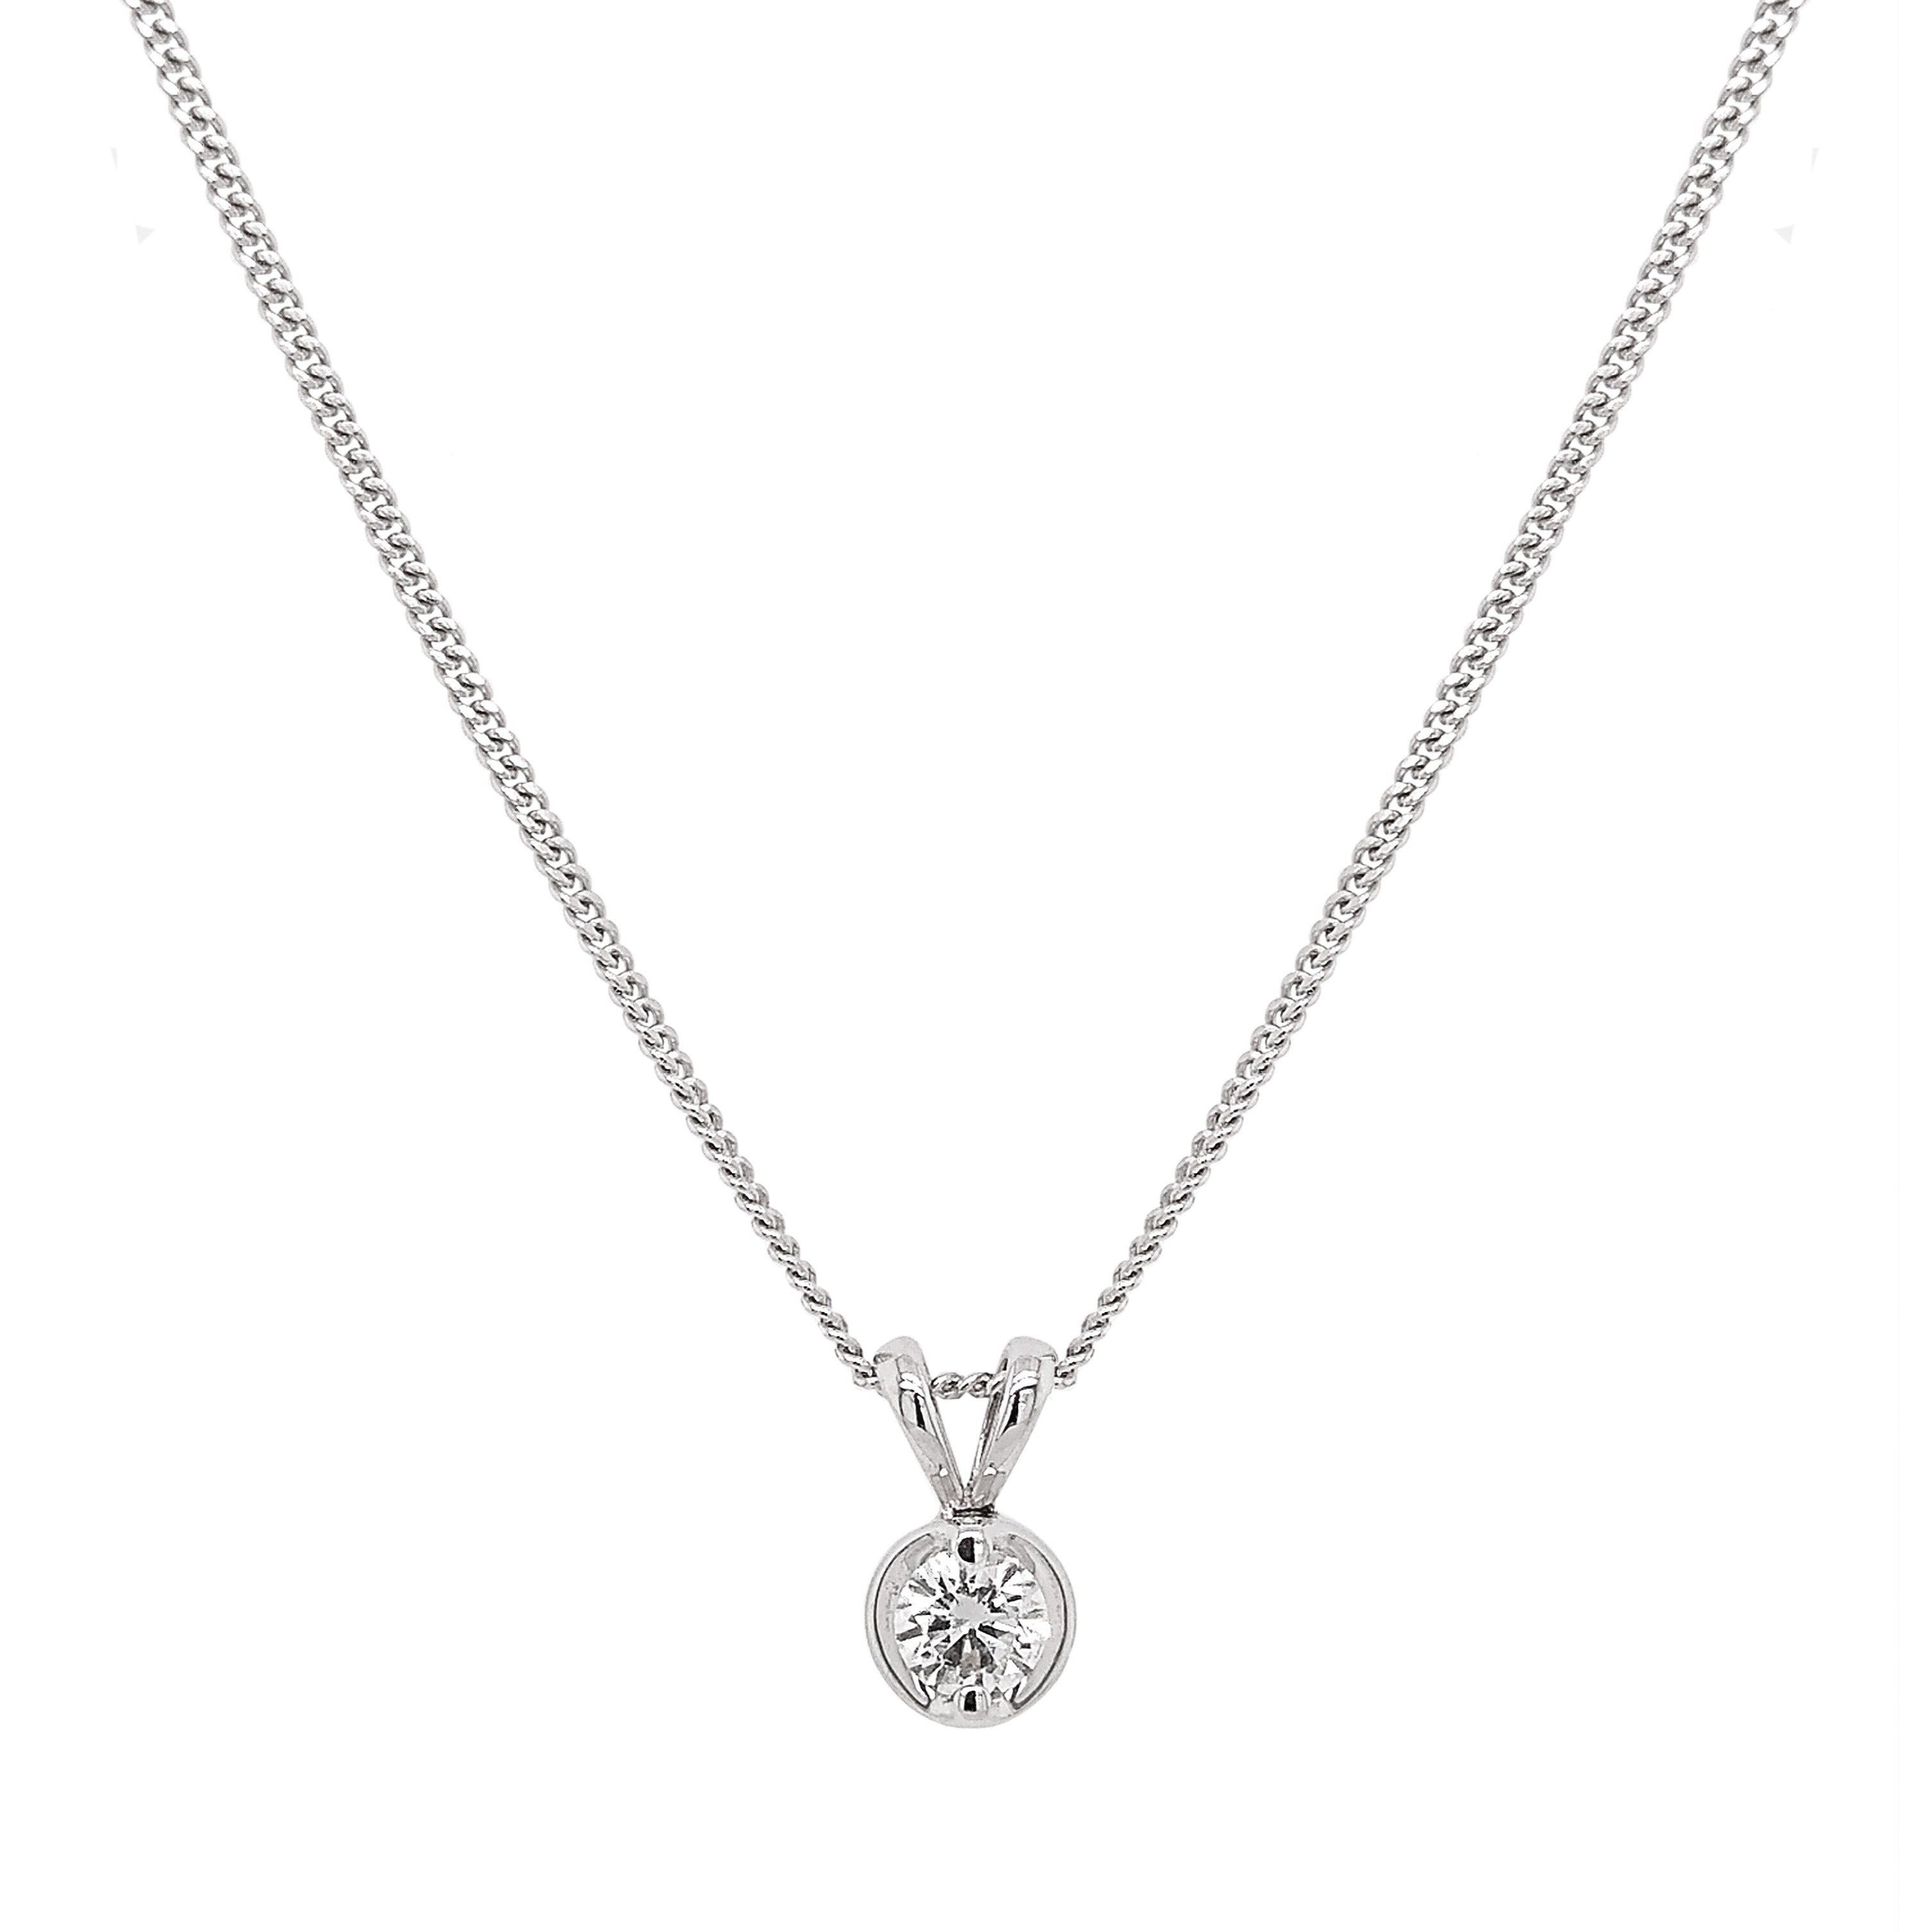 18ct White Gold Diamond Rosabella Pendant & Chain